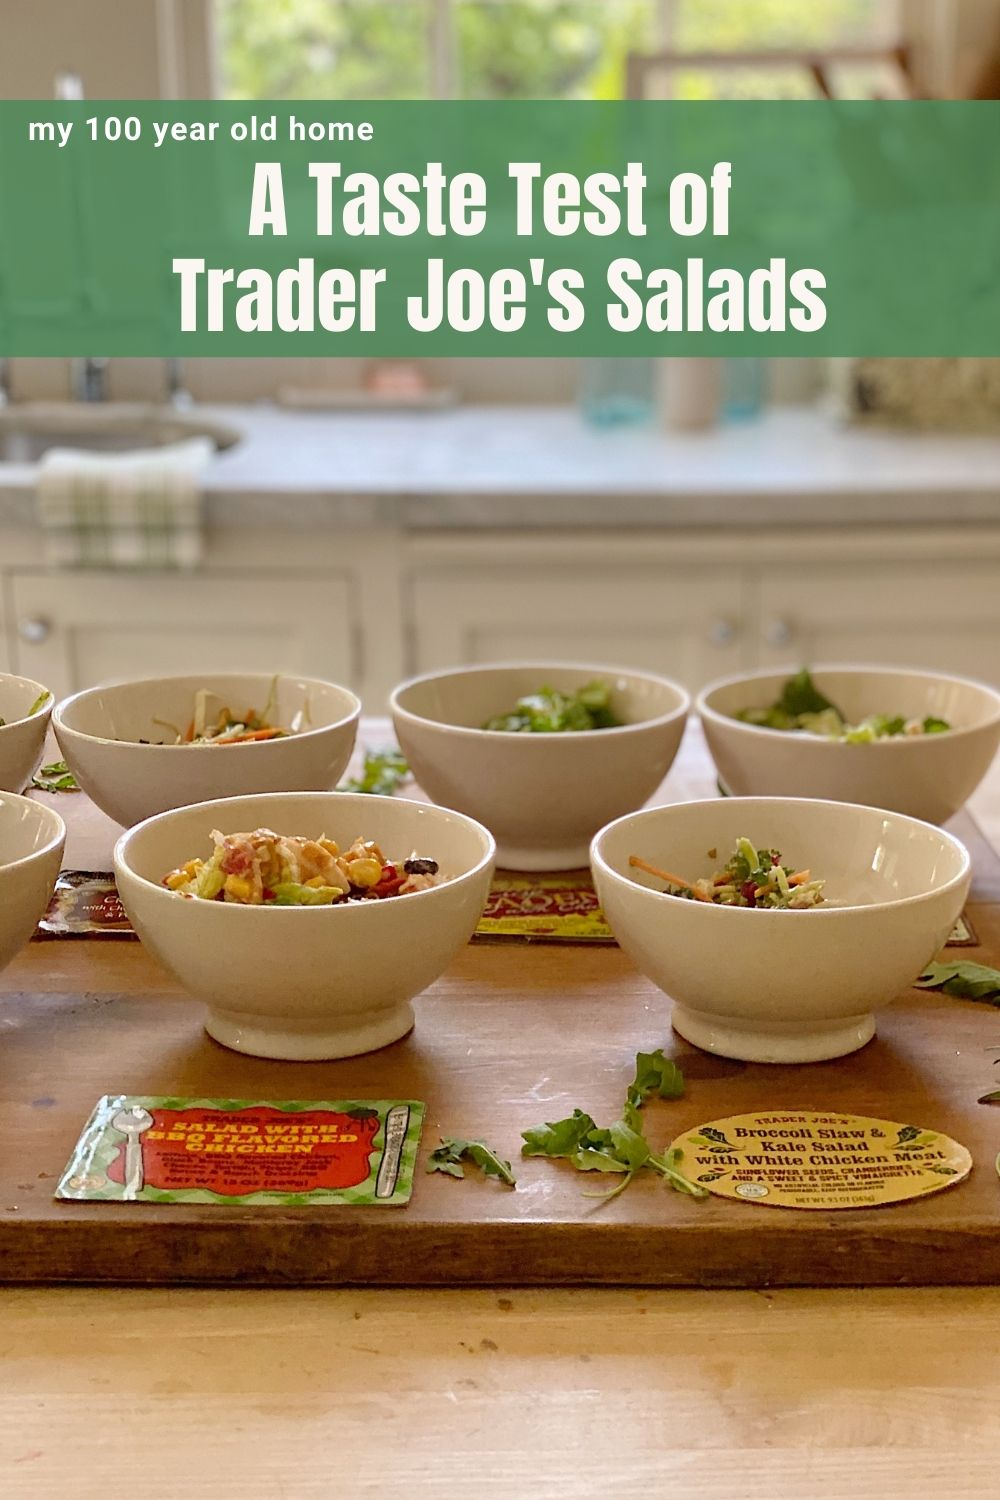 I must admit that I had eleven salads for lunch today. We did a taste test of eleven Trader Joe's Salads and I can't wait to share our finds!